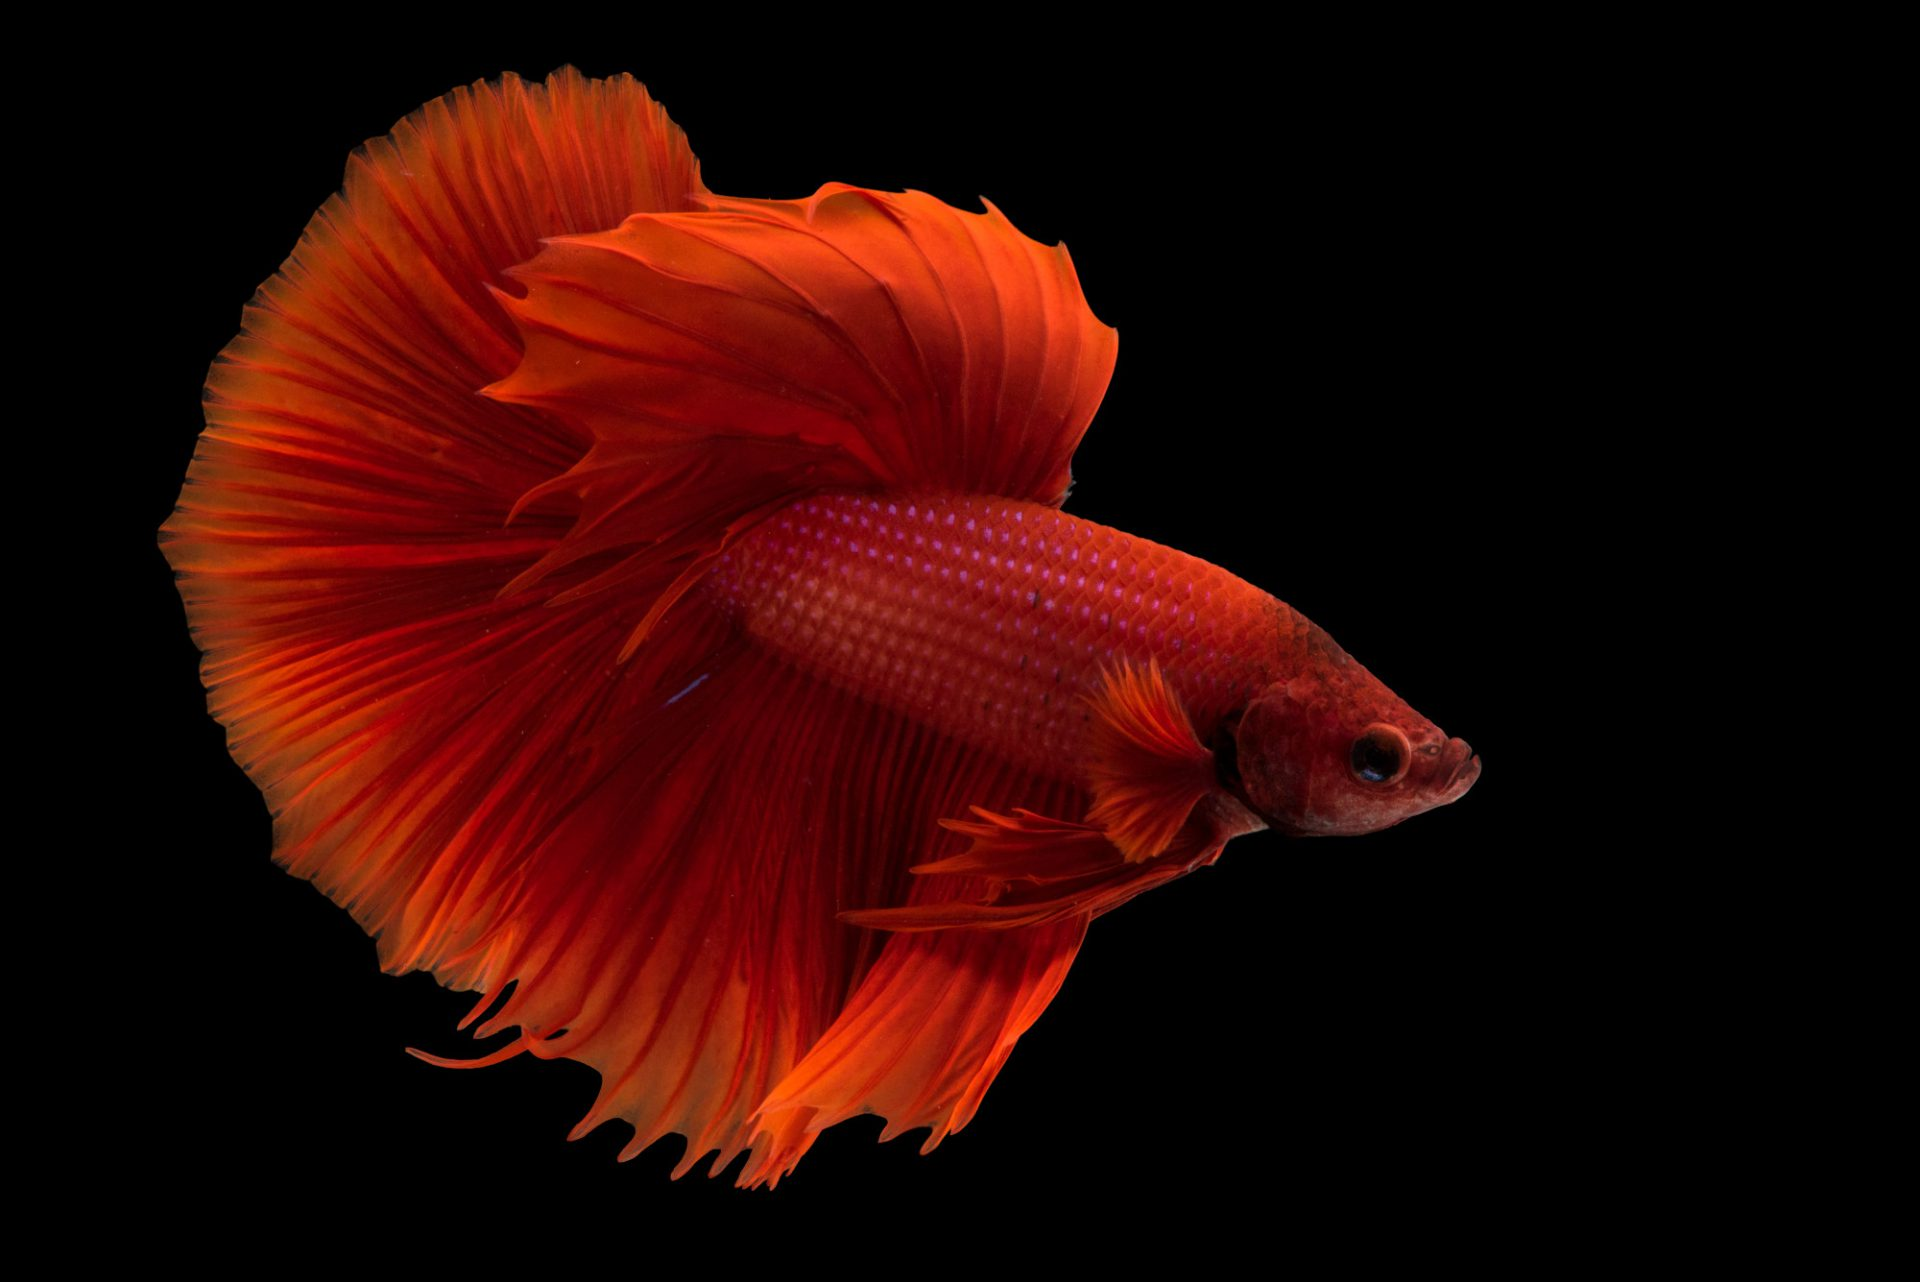 Photo: A vulnerable Siamese fighting fish or betta (Betta splendens) in Lincoln, Nebraska.